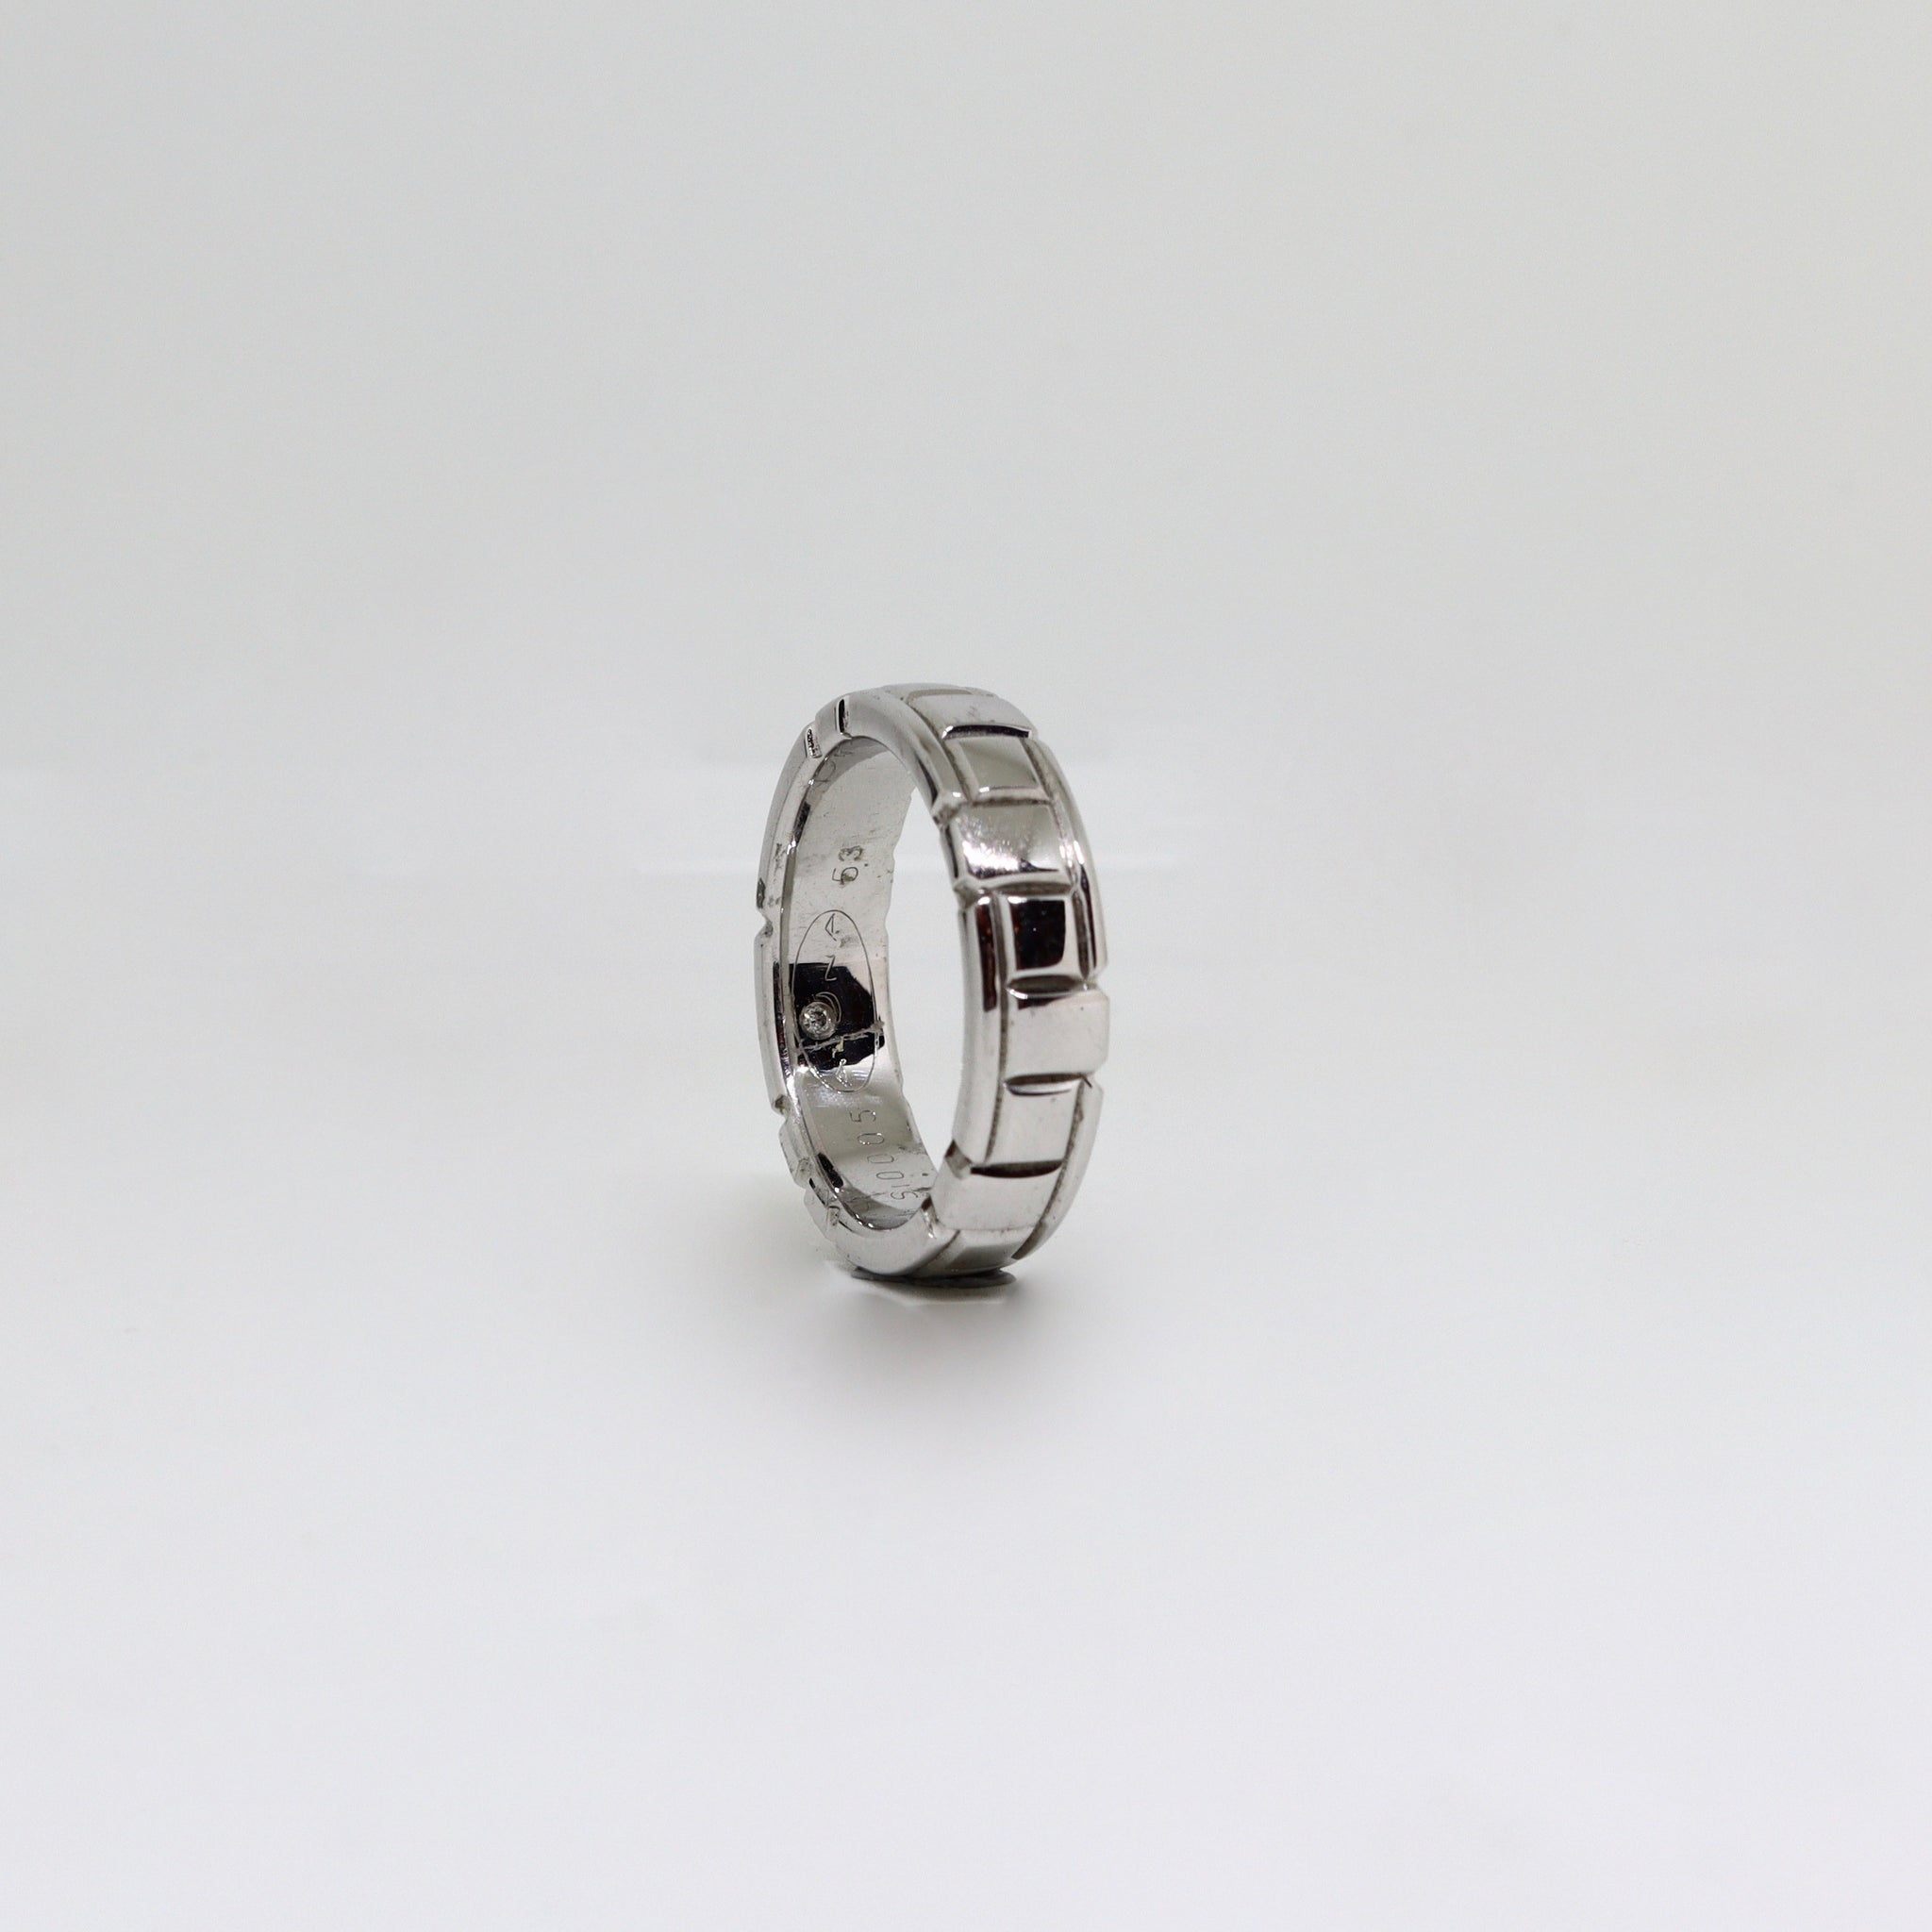 White gold polished finished geometric style womens ring